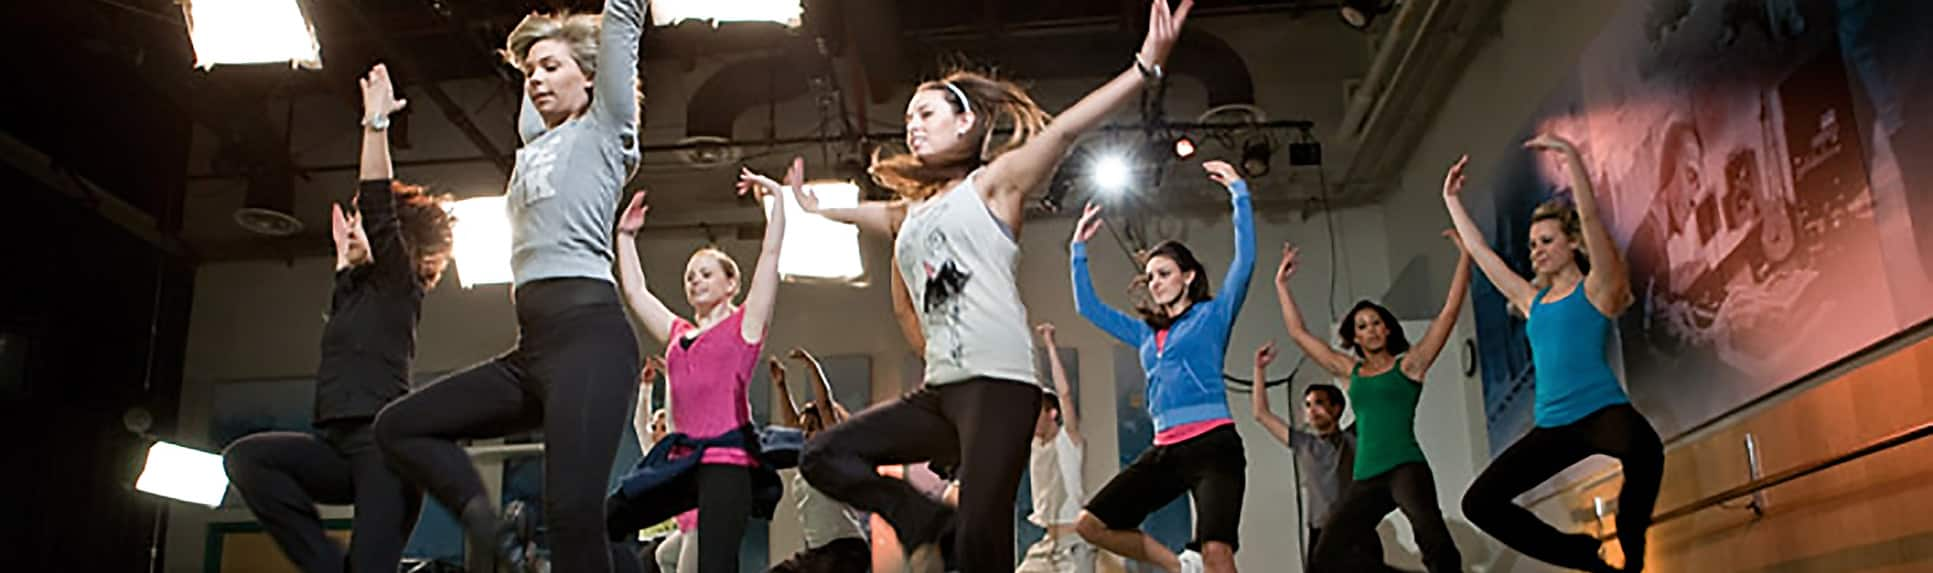 Dancers jumping in unison